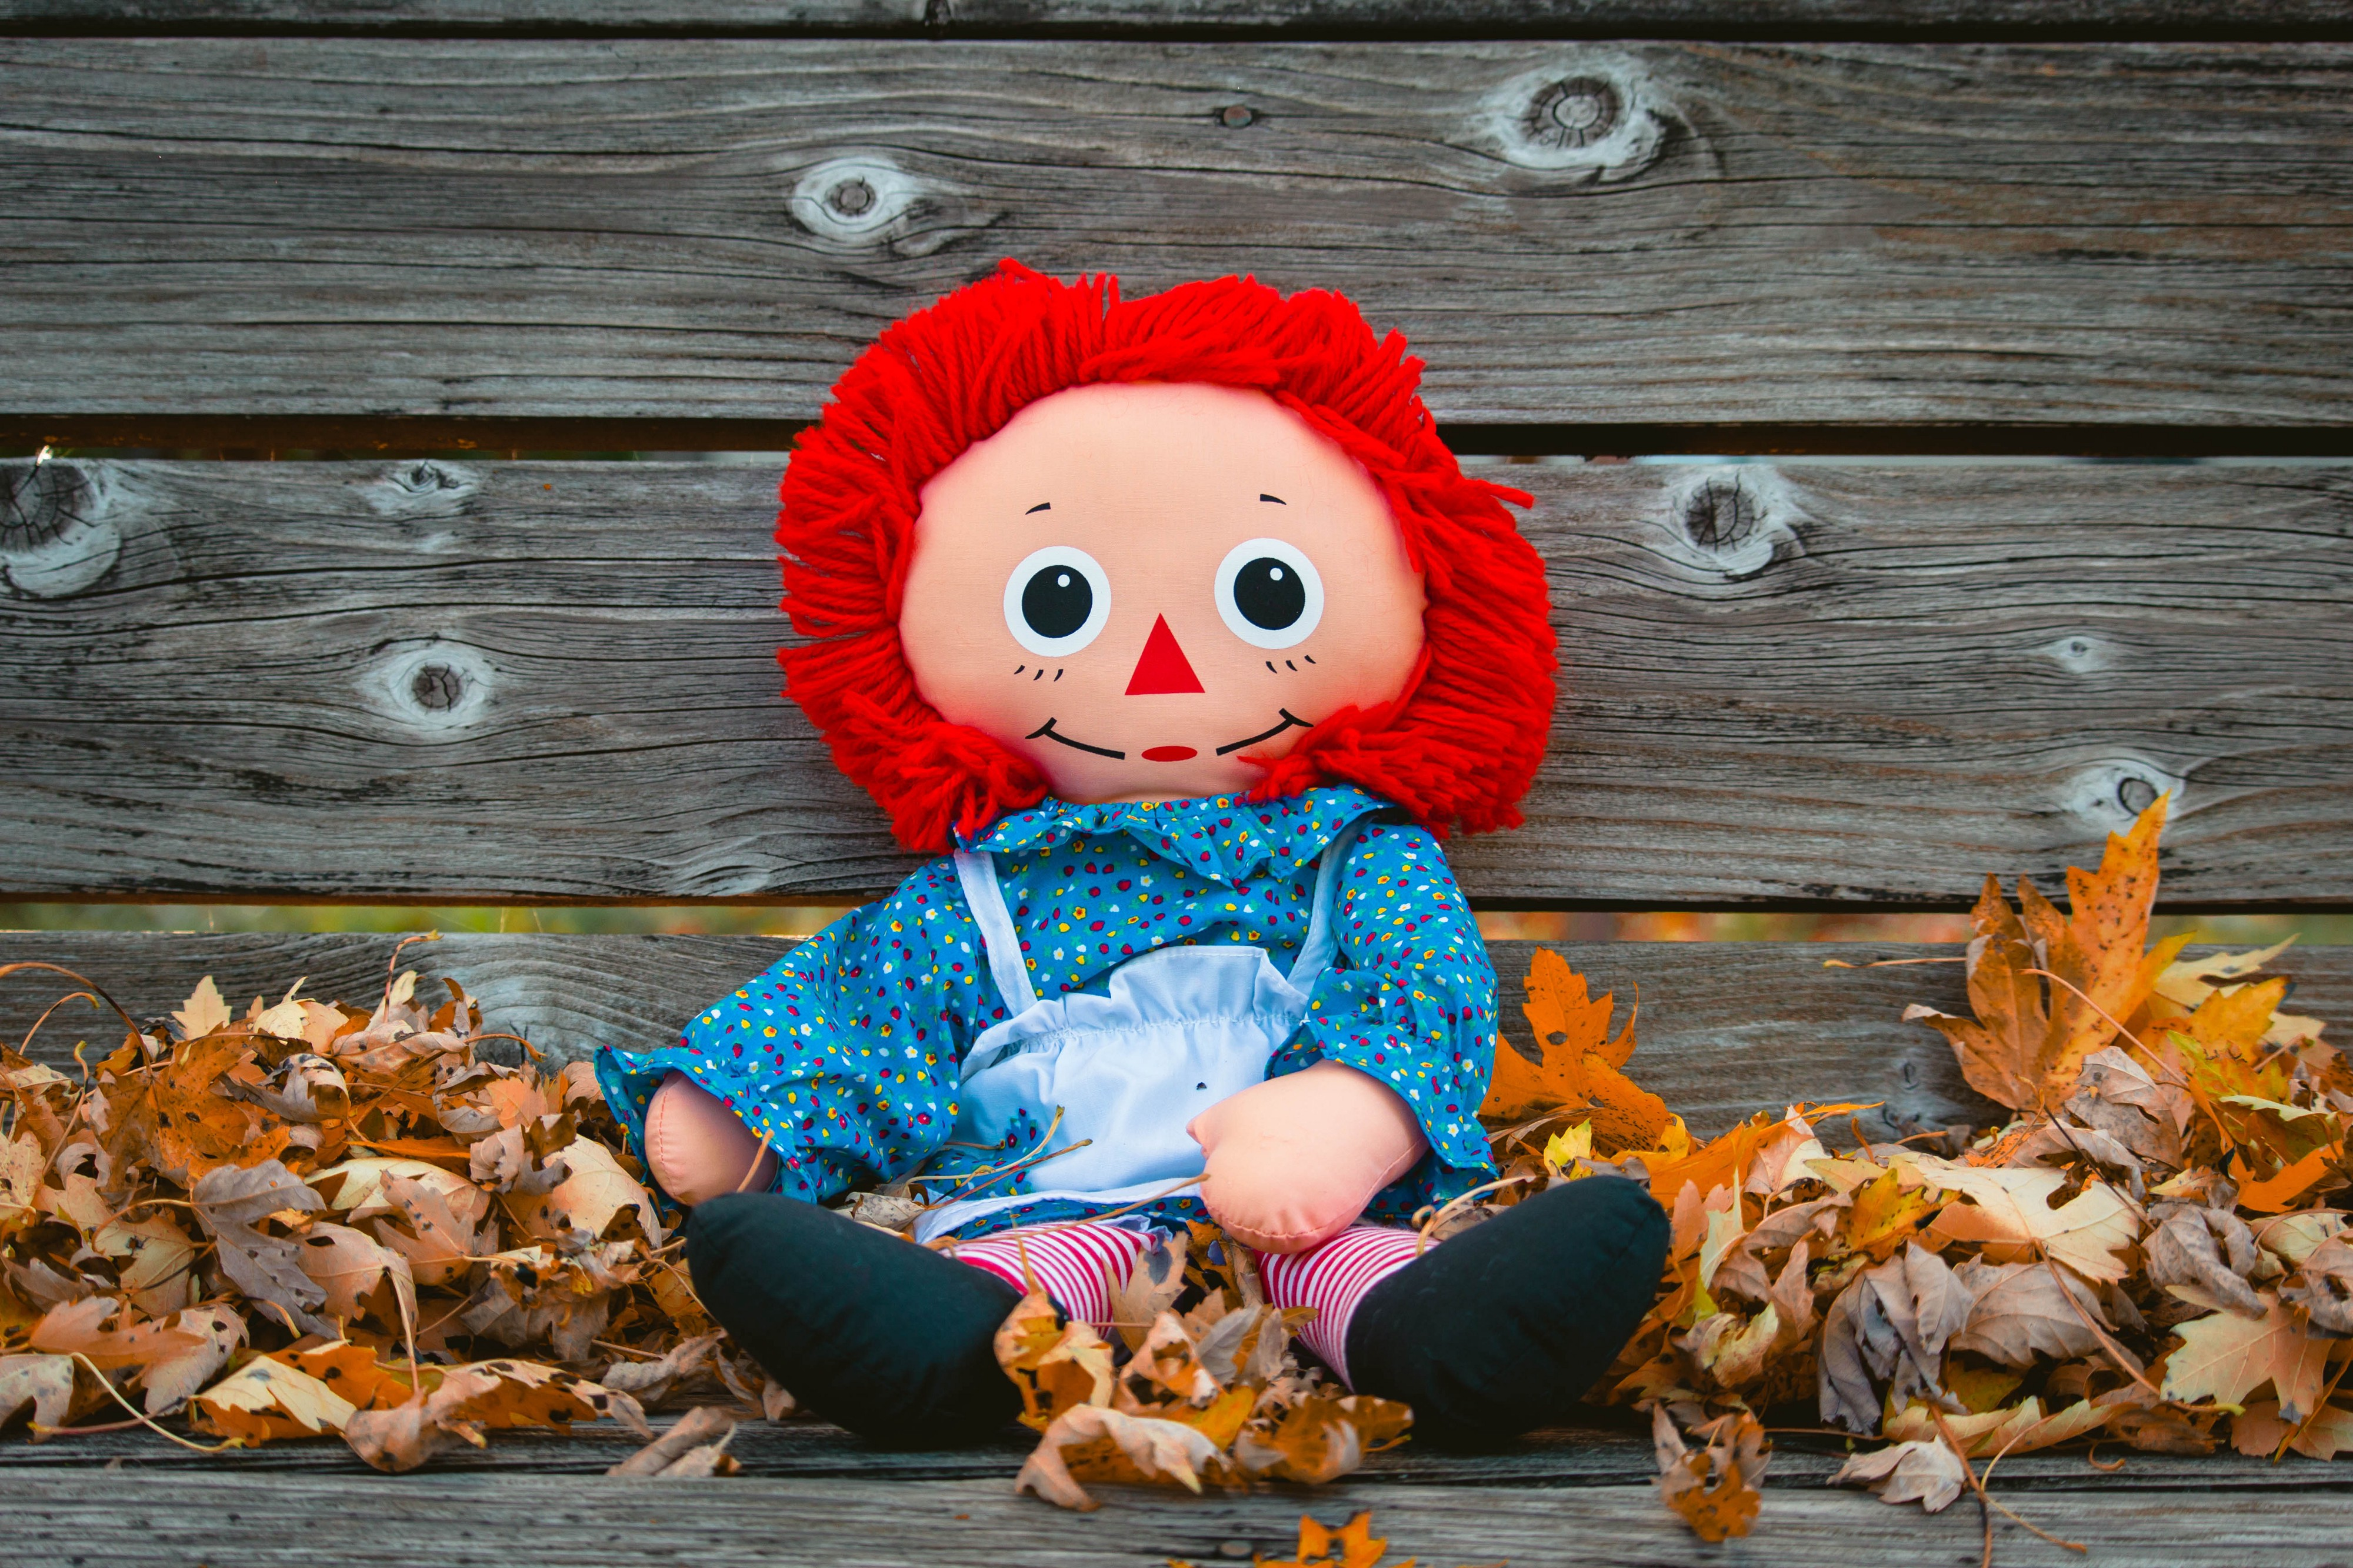 A Raggedy Ann doll. We have no way of knowing it's not haunted.